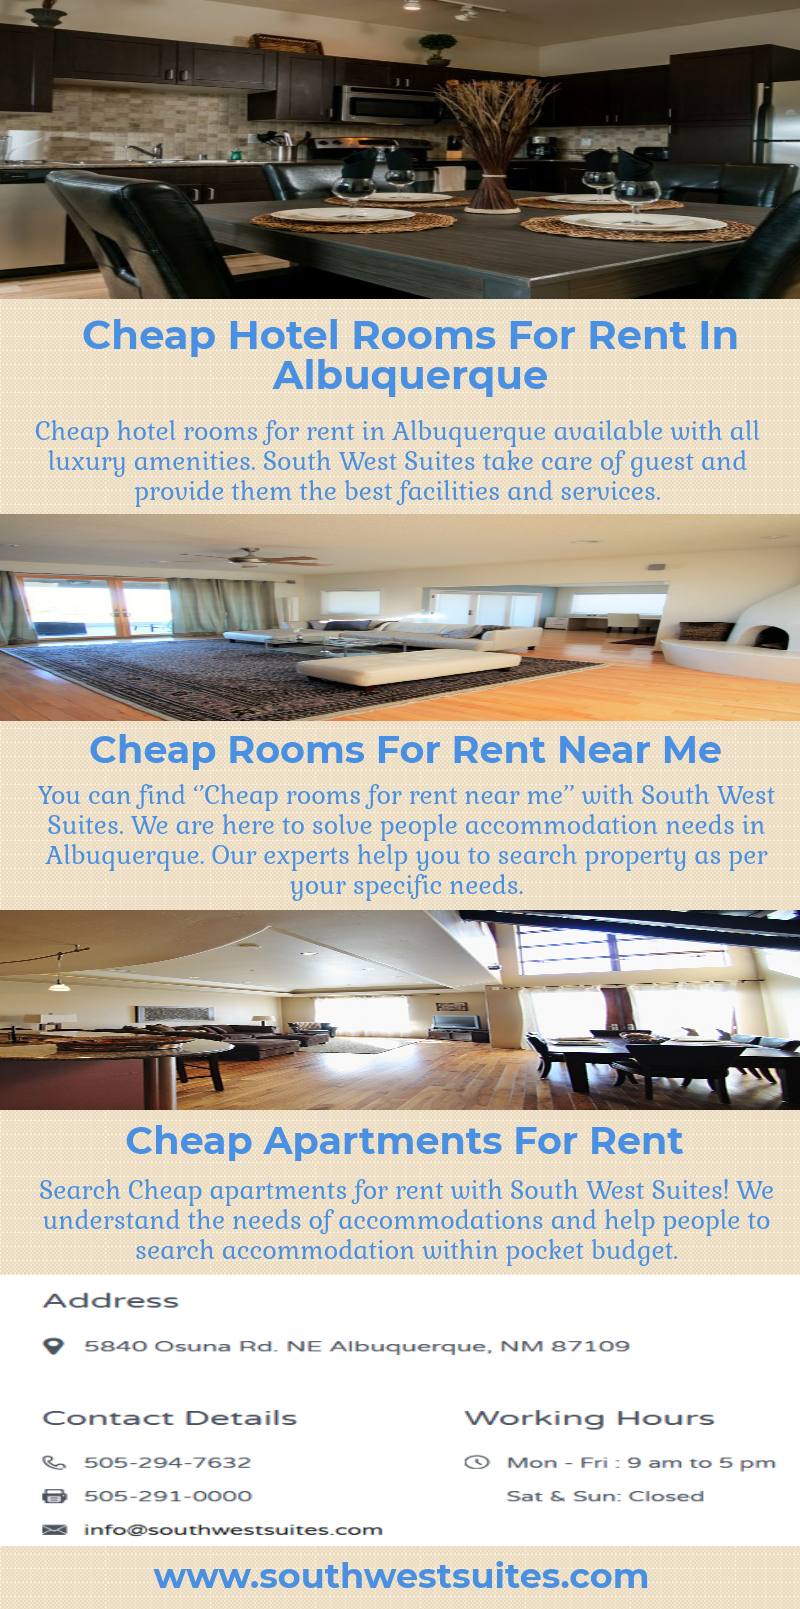 Cheap Rooms For Rent Near Me Cheap Rooms Cheap Hotel Room Rooms For Rent